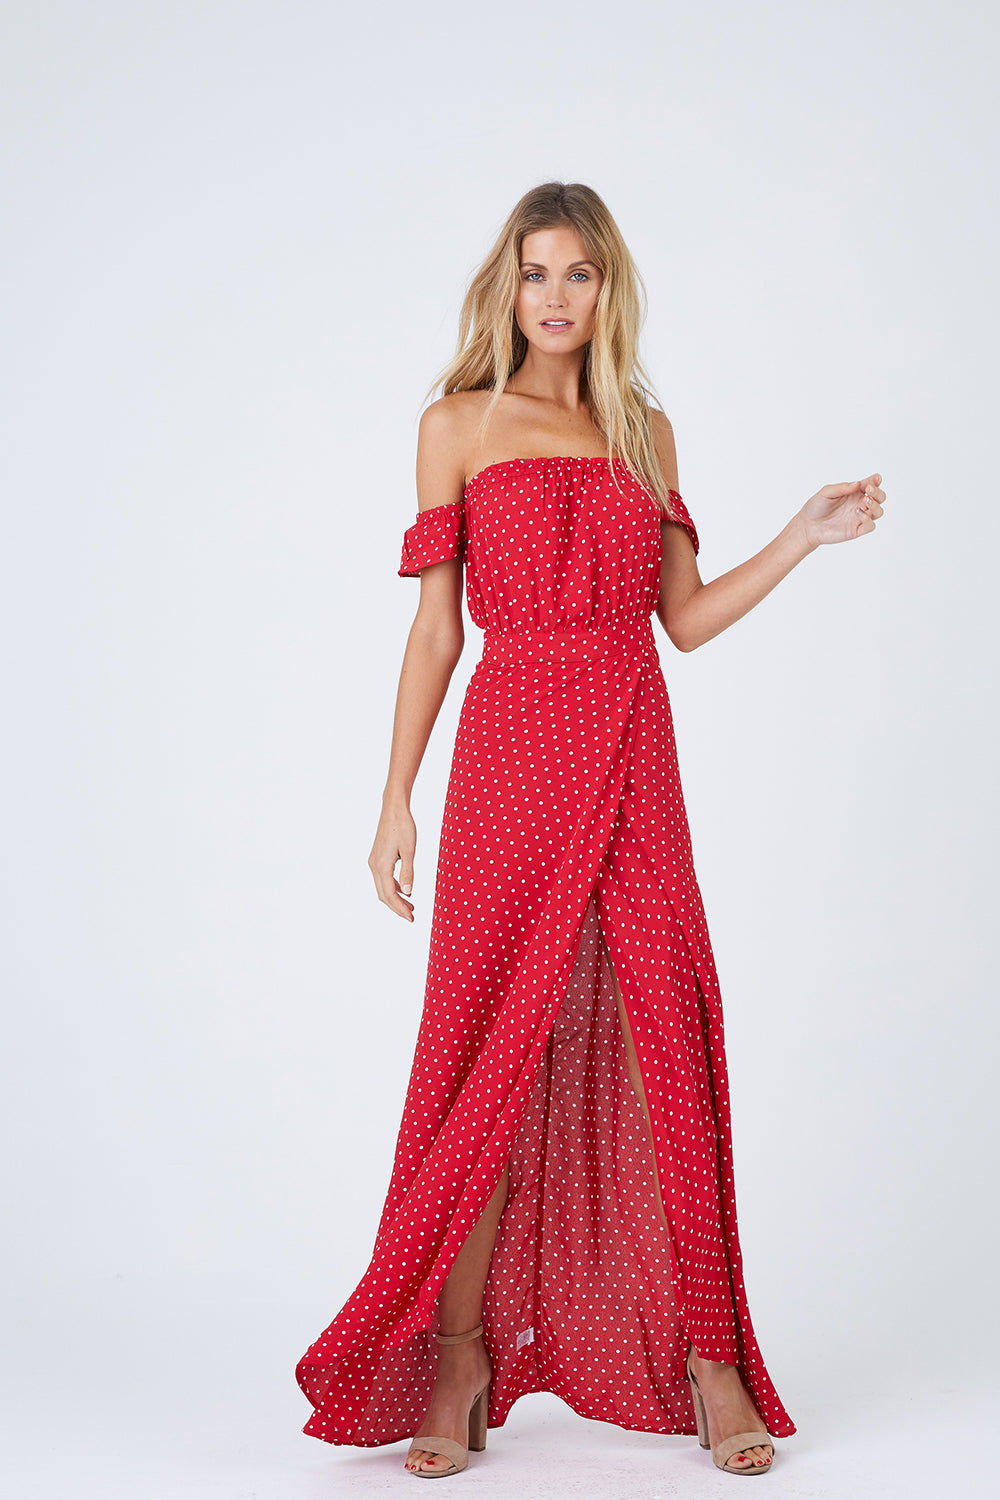 FLYNN SKYE Bella Off The Shoulder Maxi Dress - Cherry Dots Dress | Cherry Dots| Flynn Skye Bella Maxi Dress - Cherry Dots Ruffled off shoulder straps Dramatic wrap skirt High, ultra-sexy leg slit at the front Stretchy gathered elastic band at the back 100% Rayon Dry clean Made in Los Angeles Front View